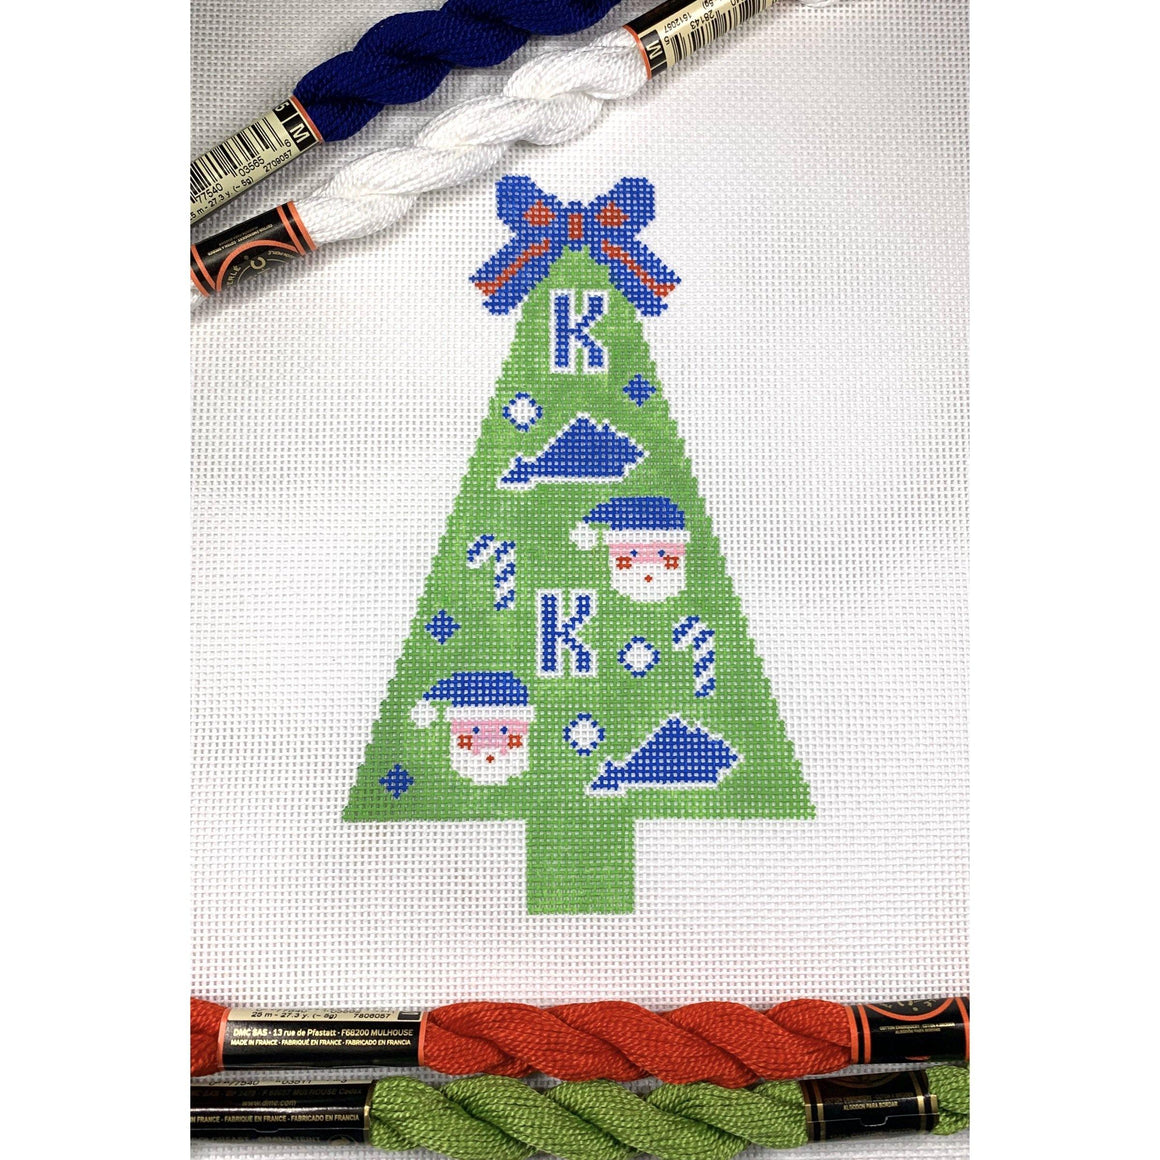 State of Kentucky Christmas tree needlepoint canvas - Needlepoint by Laura, LLC